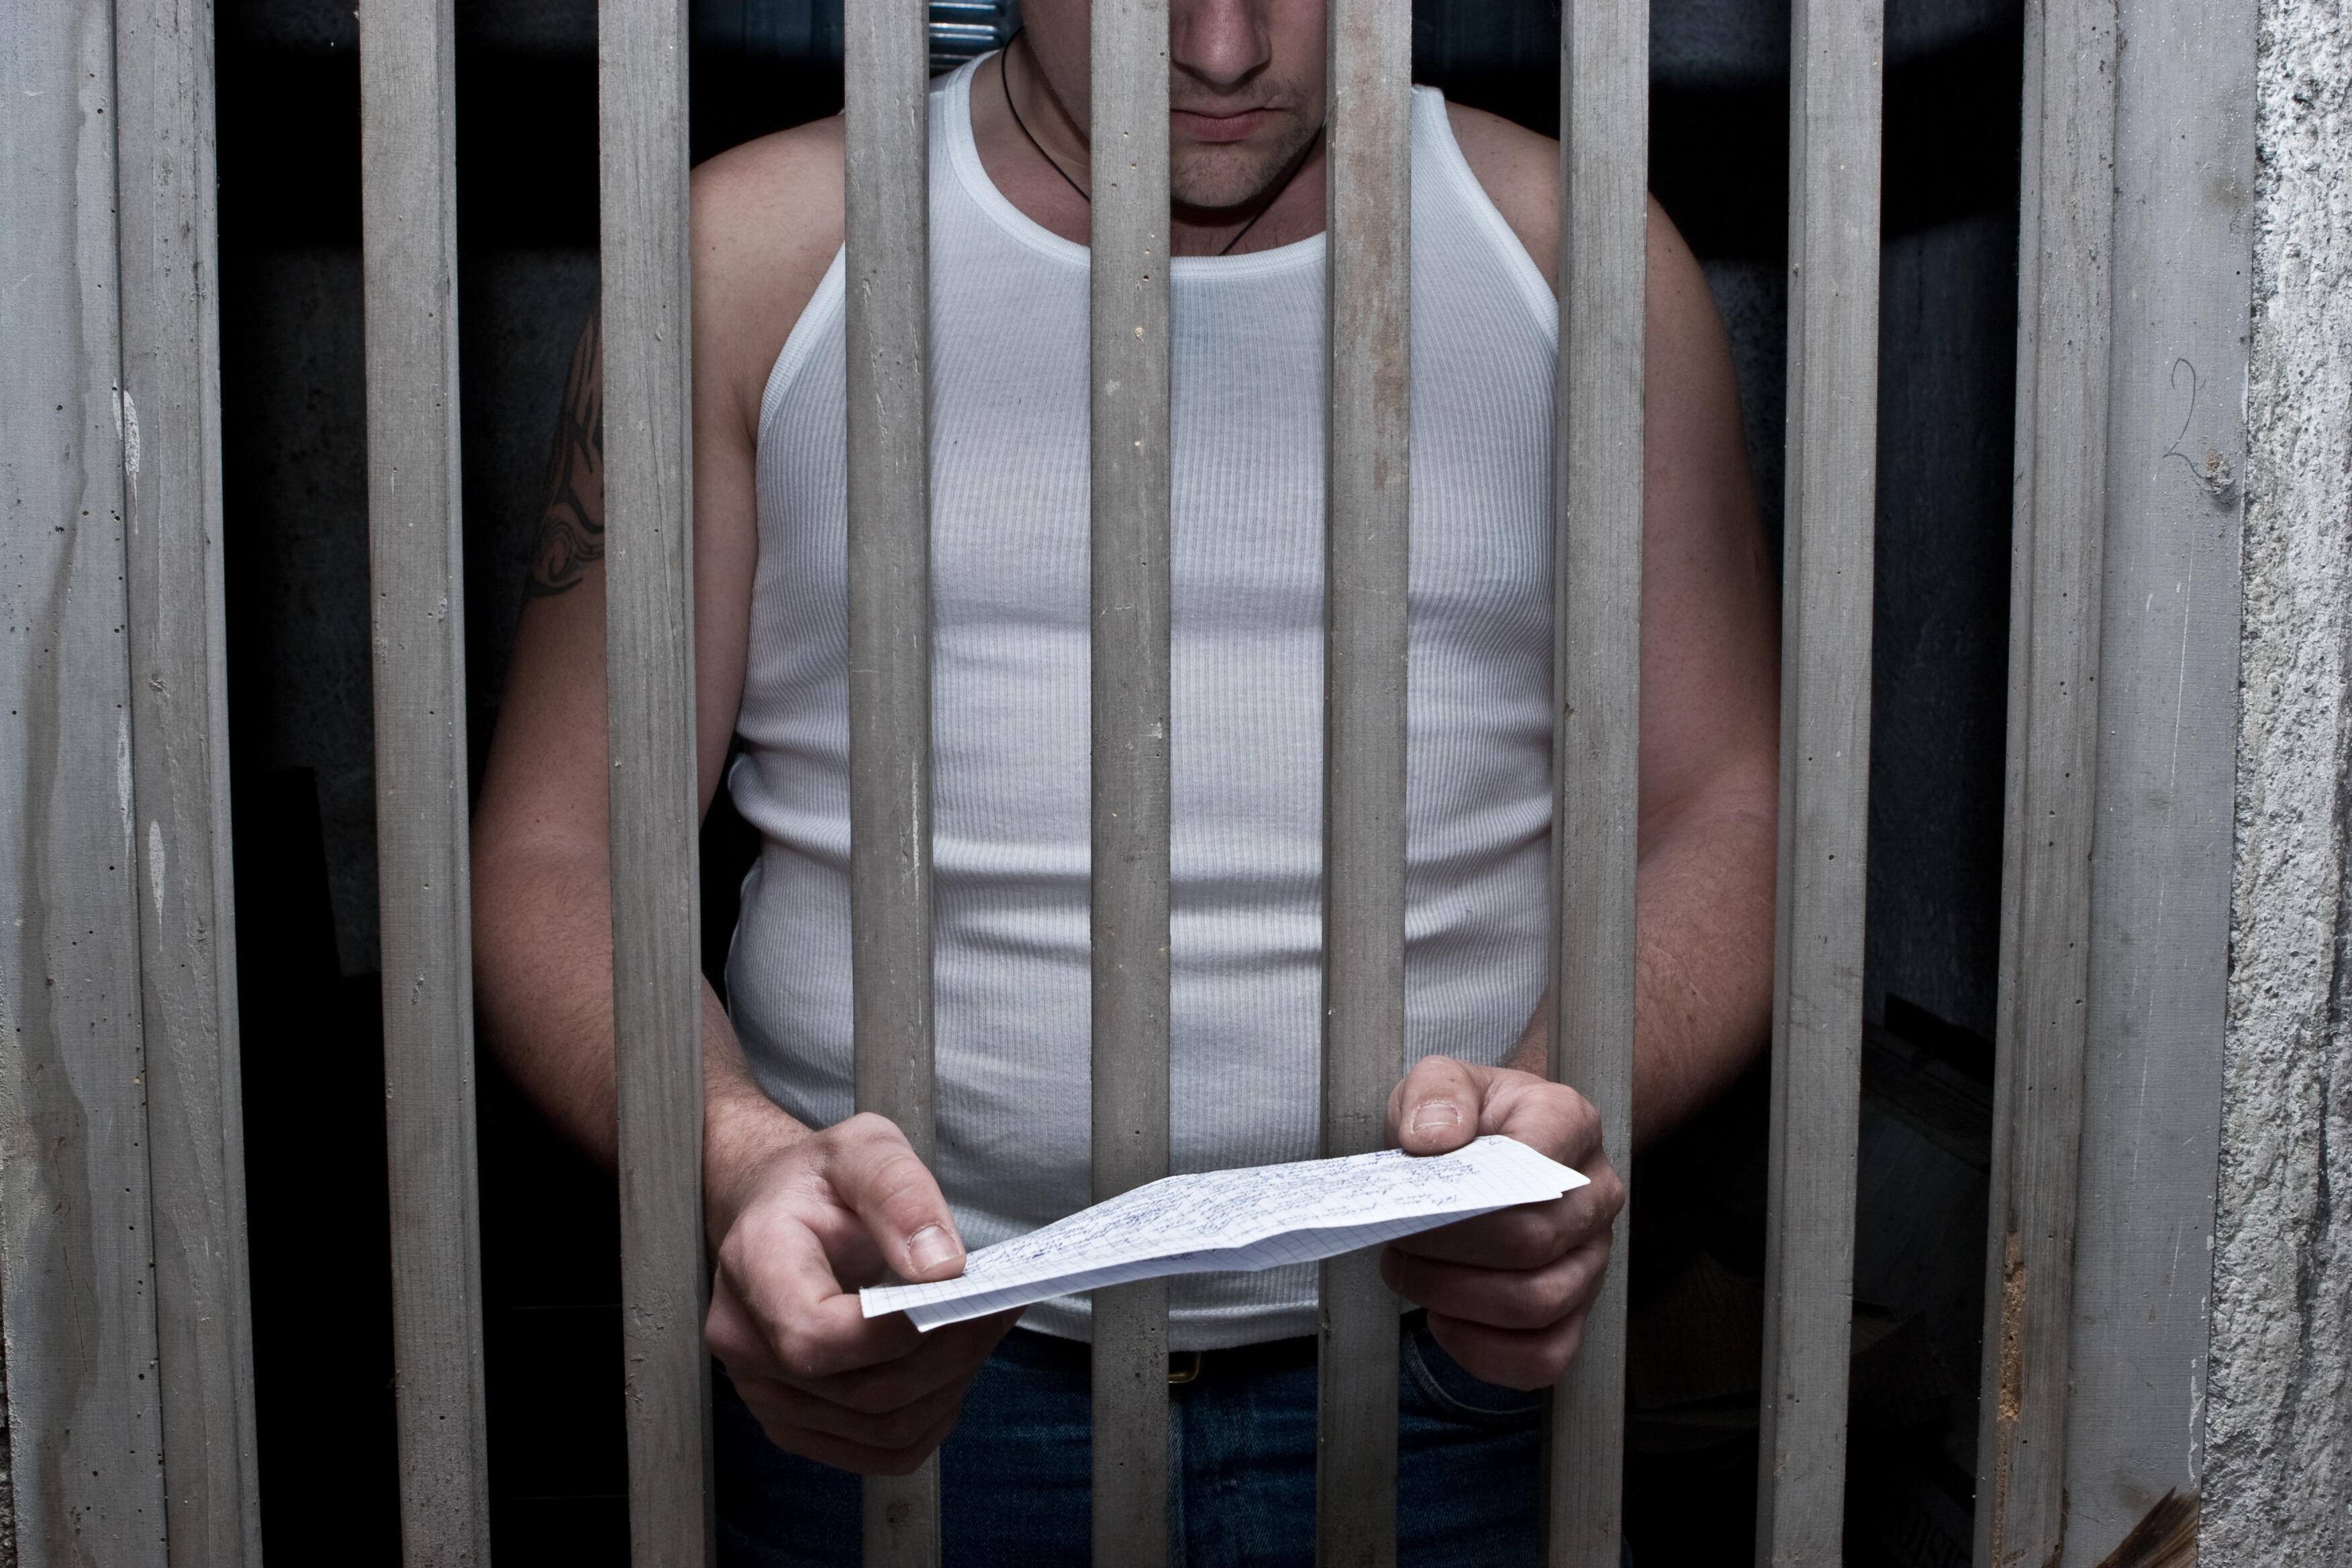 An inmate reads a letter.